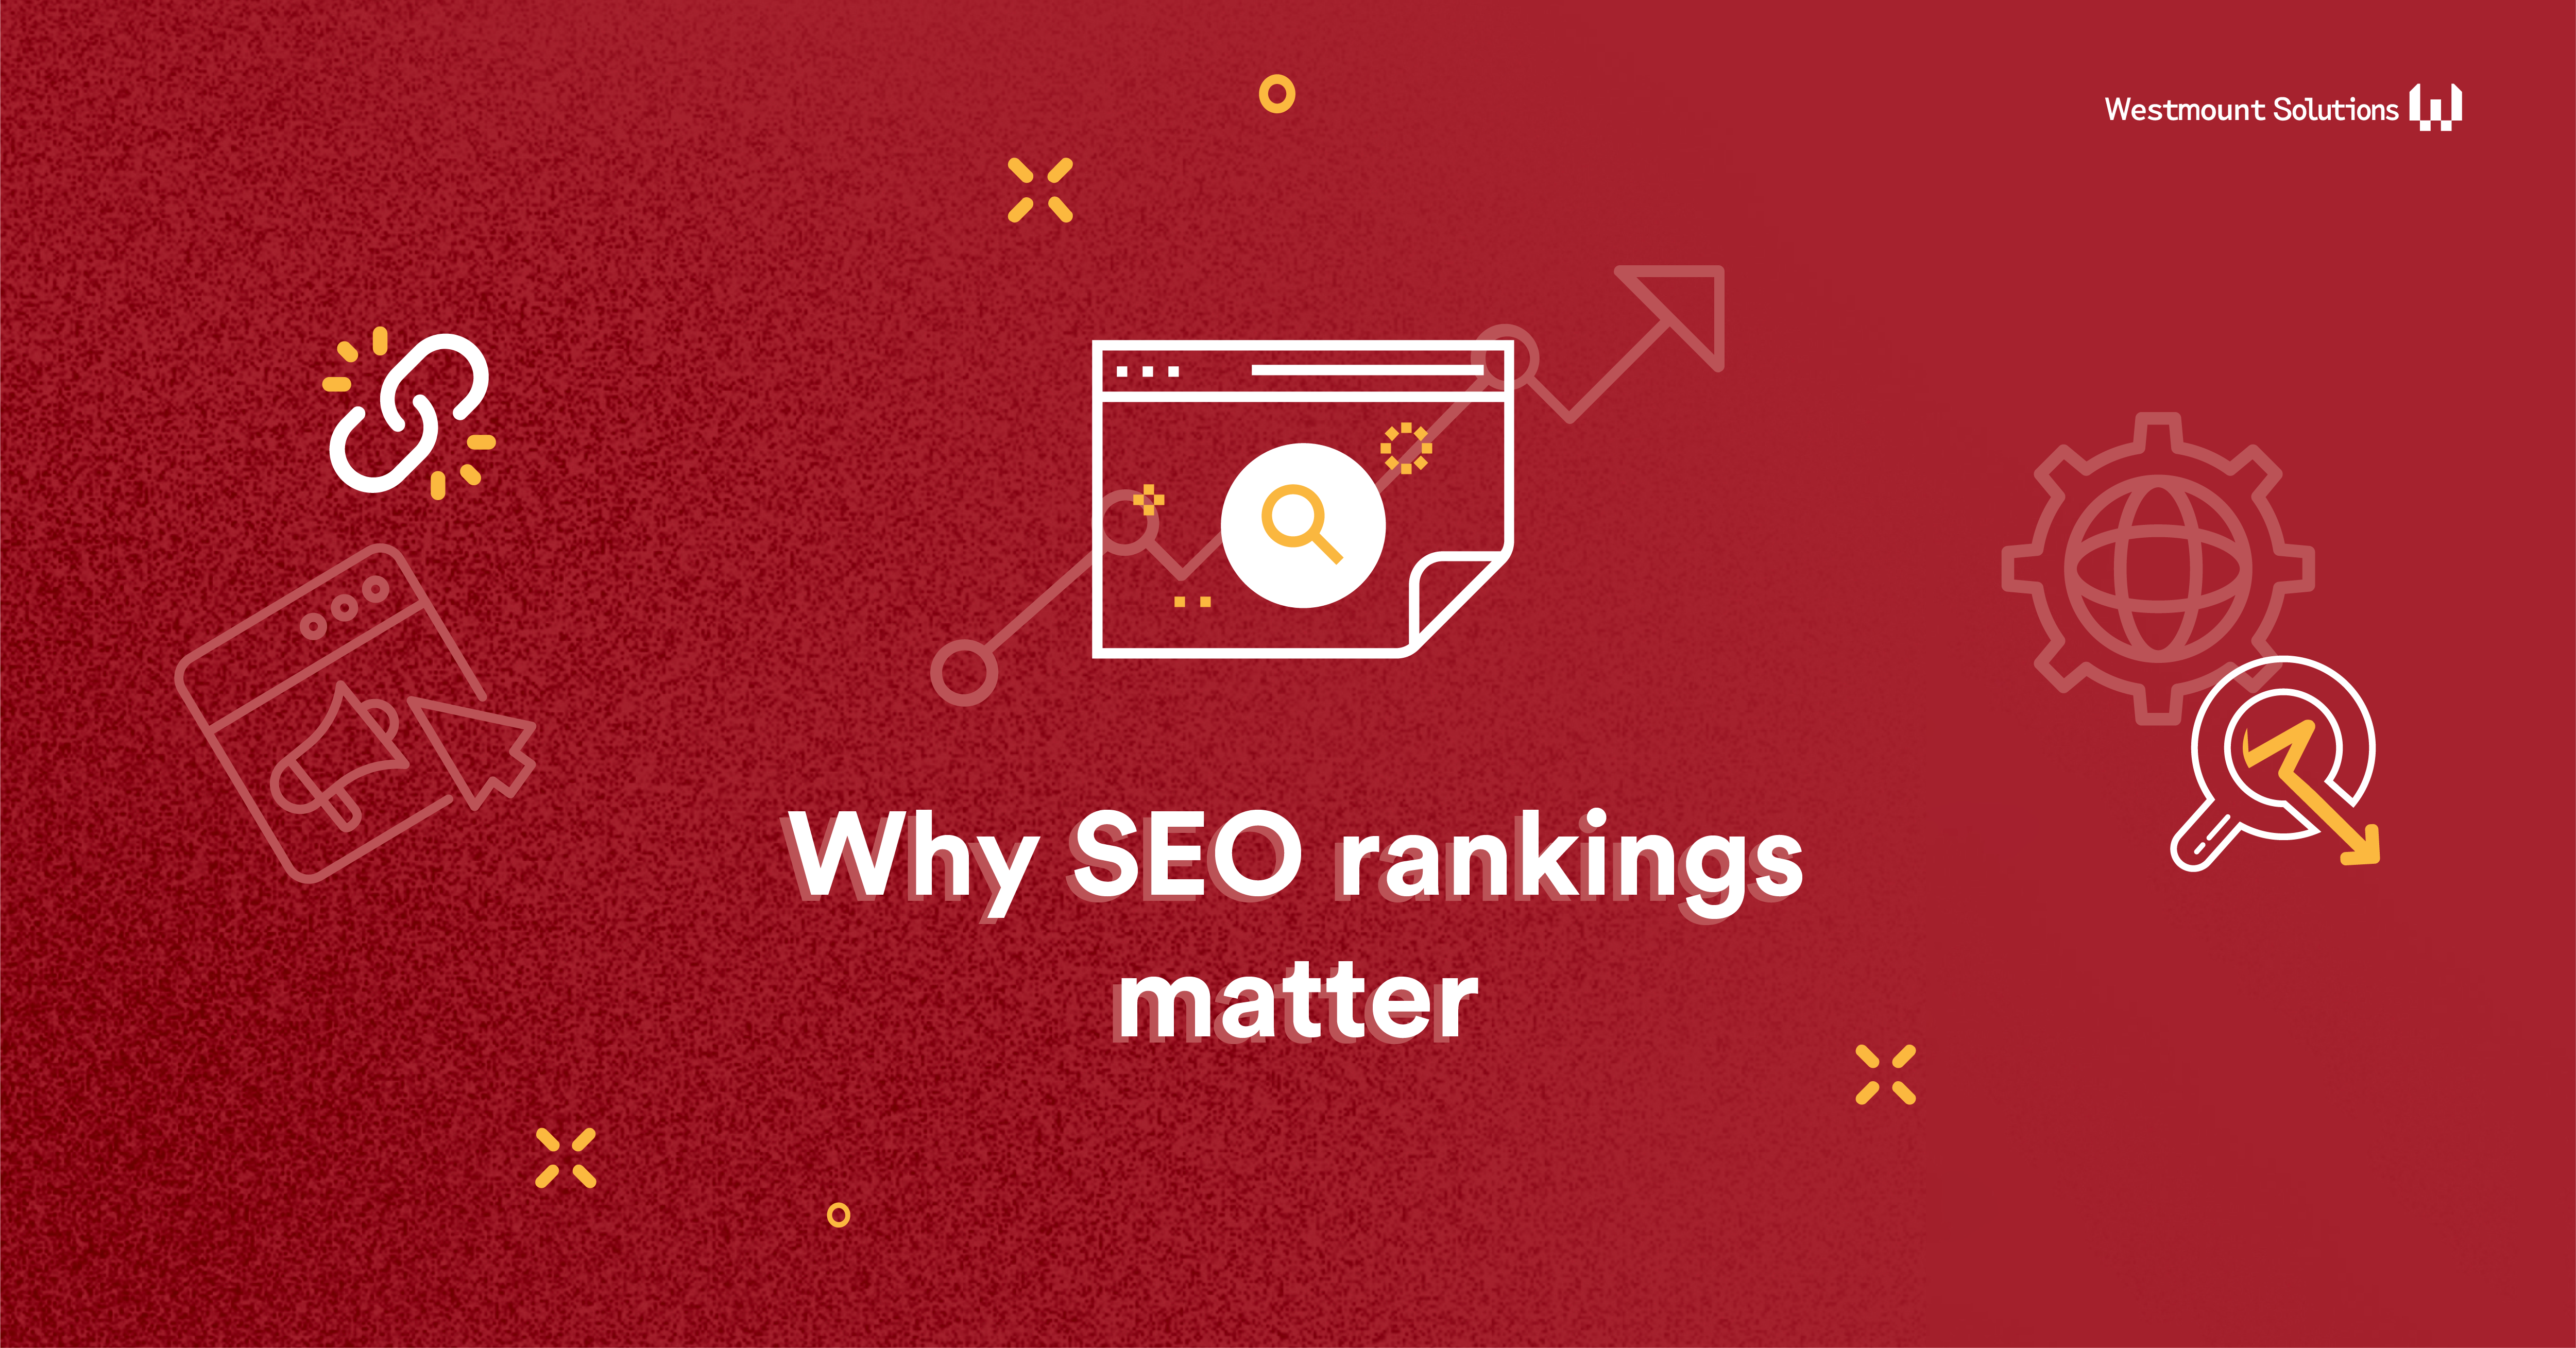 This is an image of how to make your site SEO friendly.